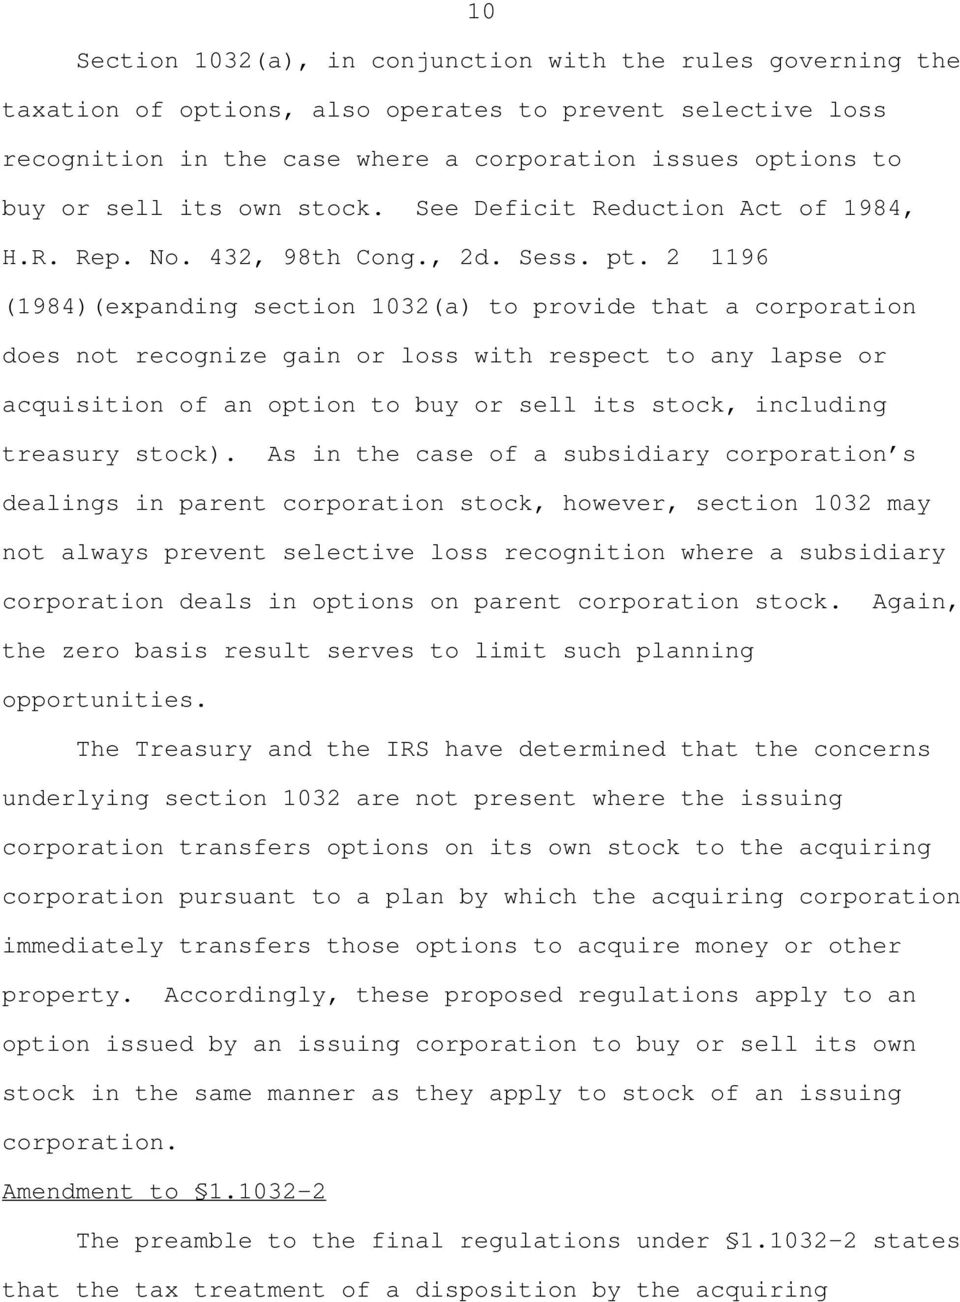 2 1196 (1984)(expanding section 1032(a) to provide that a corporation does not recognize gain or loss with respect to any lapse or acquisition of an option to buy or sell its stock, including